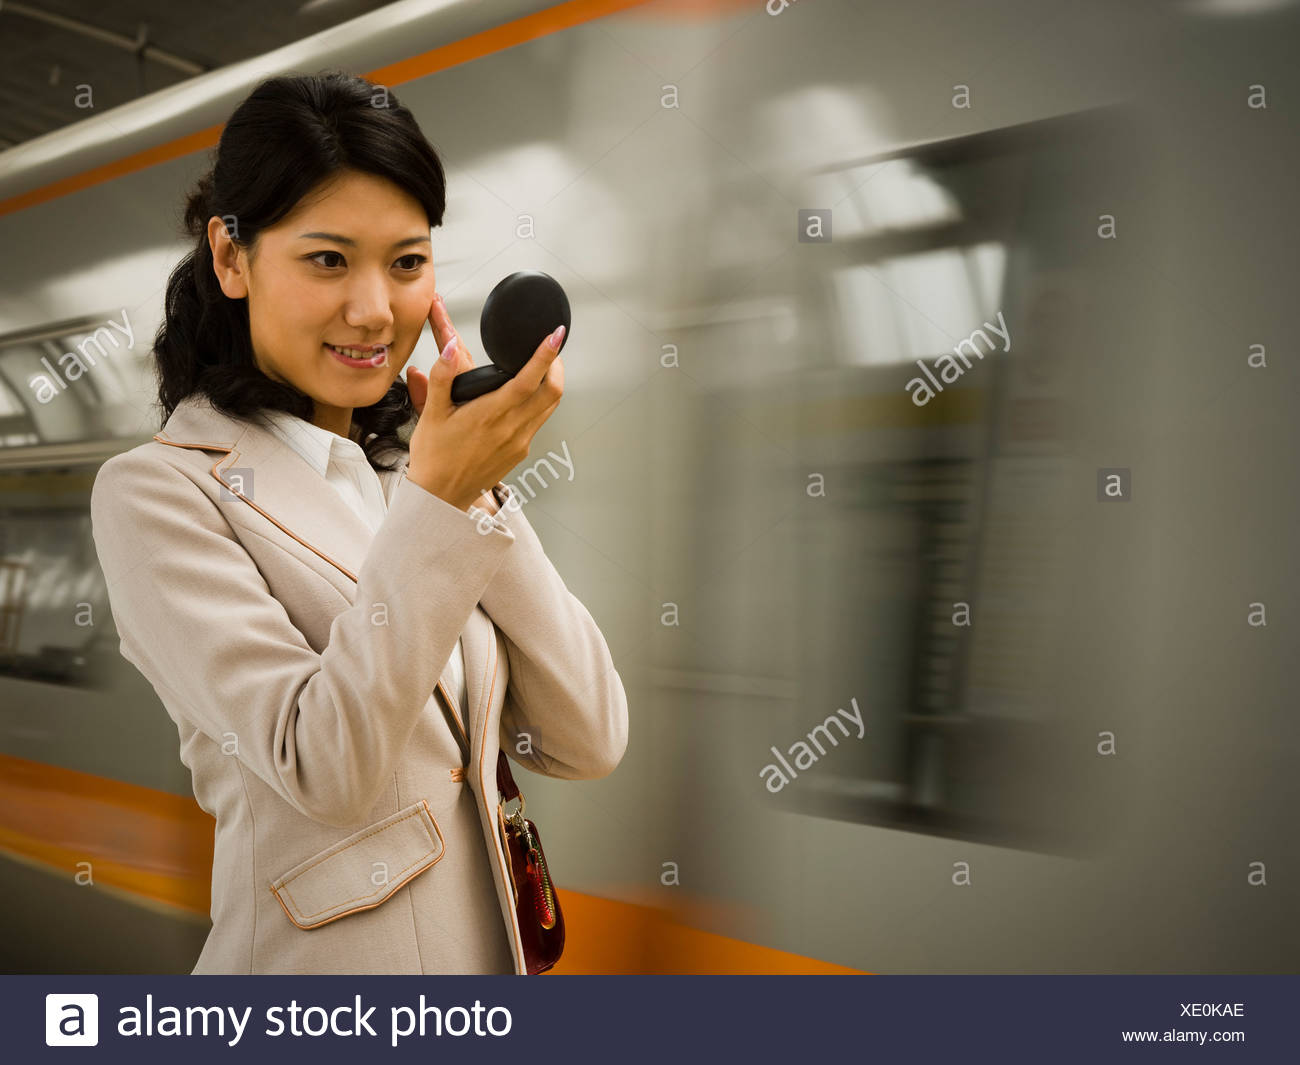 Businesswoman on subway platform smiling and looking in compact mirror - Stock Image